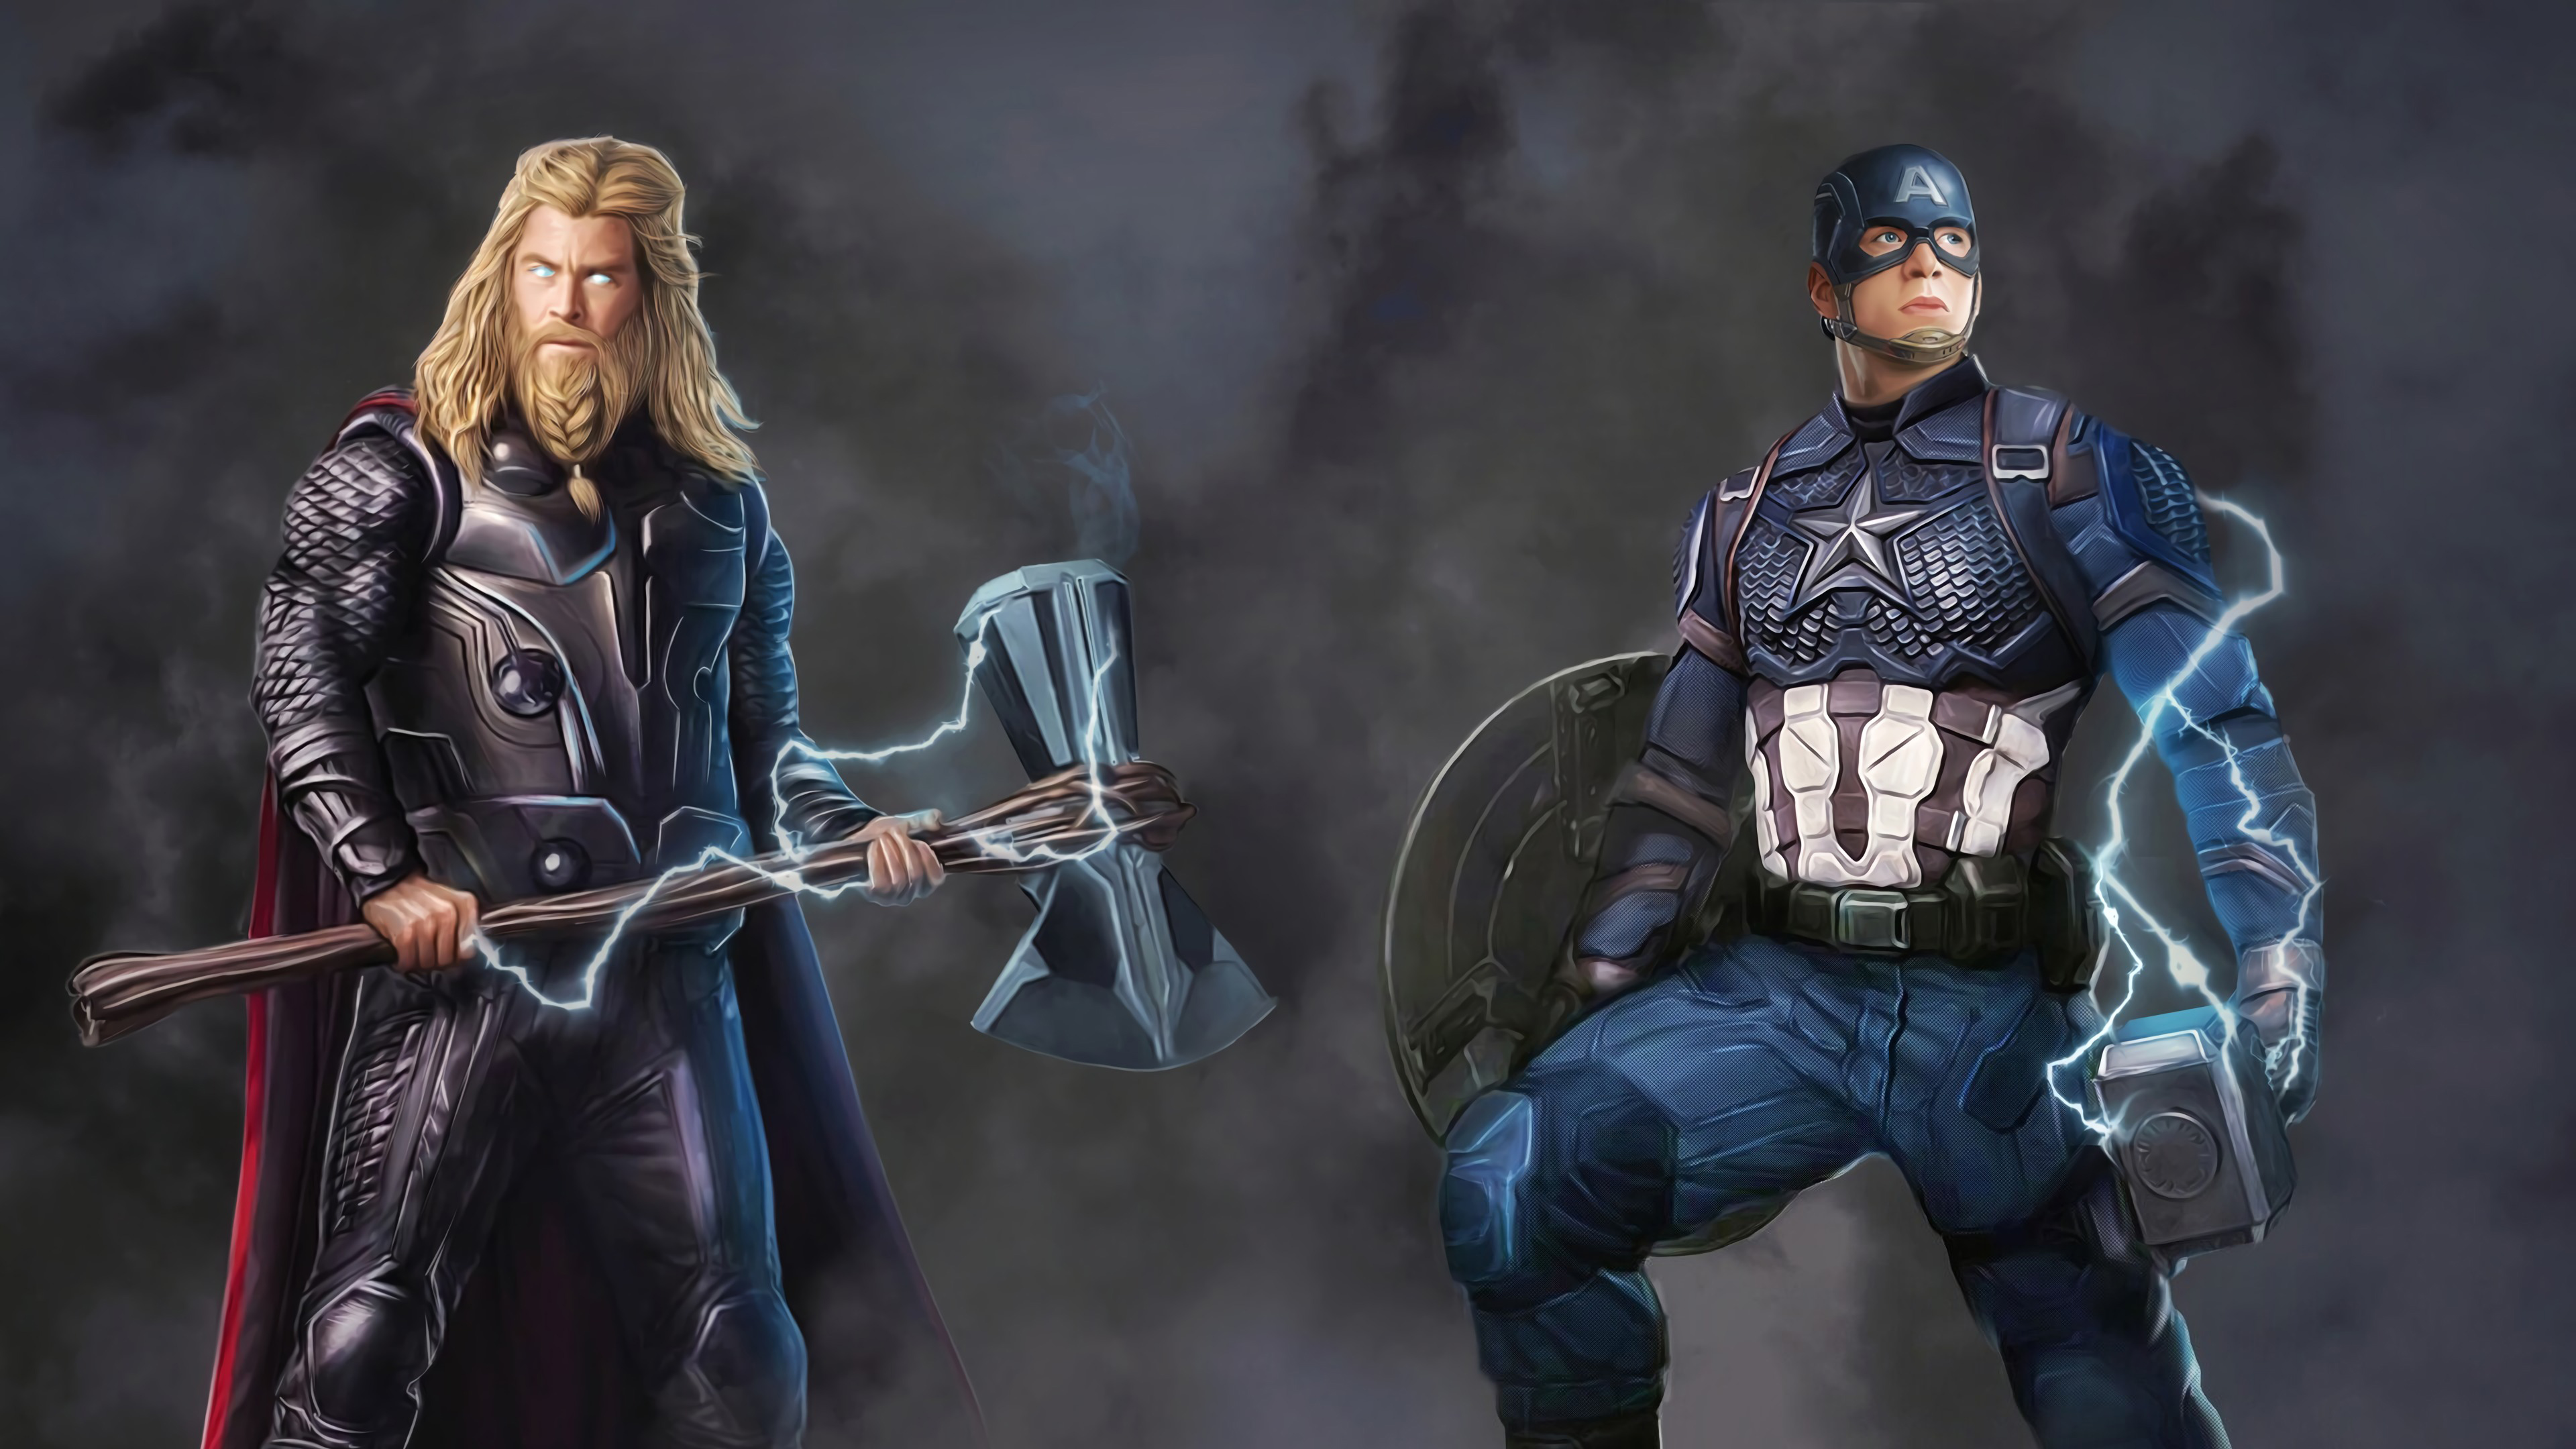 captain and thor 1569186531 - Captain And Thor - thor wallpapers, superheroes wallpapers, hd-wallpapers, digital art wallpapers, captain america wallpapers, artwork wallpapers, 4k-wallpapers